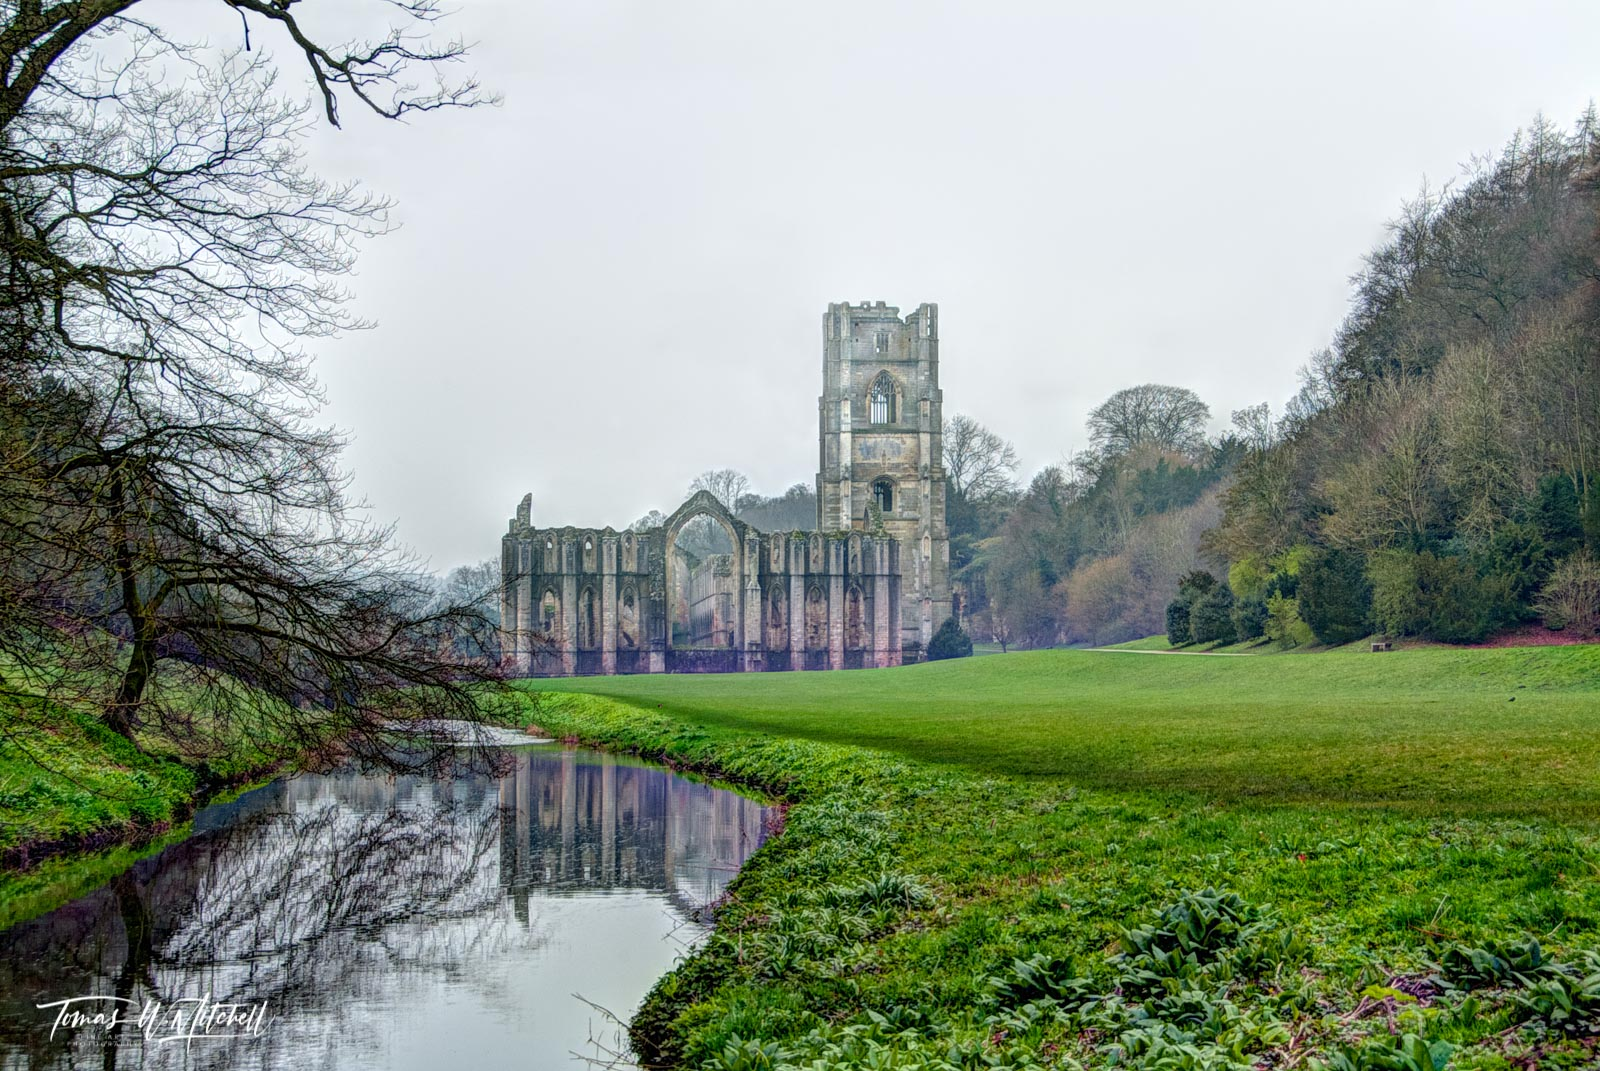 limited edition, museum grade, fine art, prints, fountains abbey, reflection, studley royal park, england, photographing, ruins, world heritage site, North Yorkshire, 18th century, landscape, garden, , photo